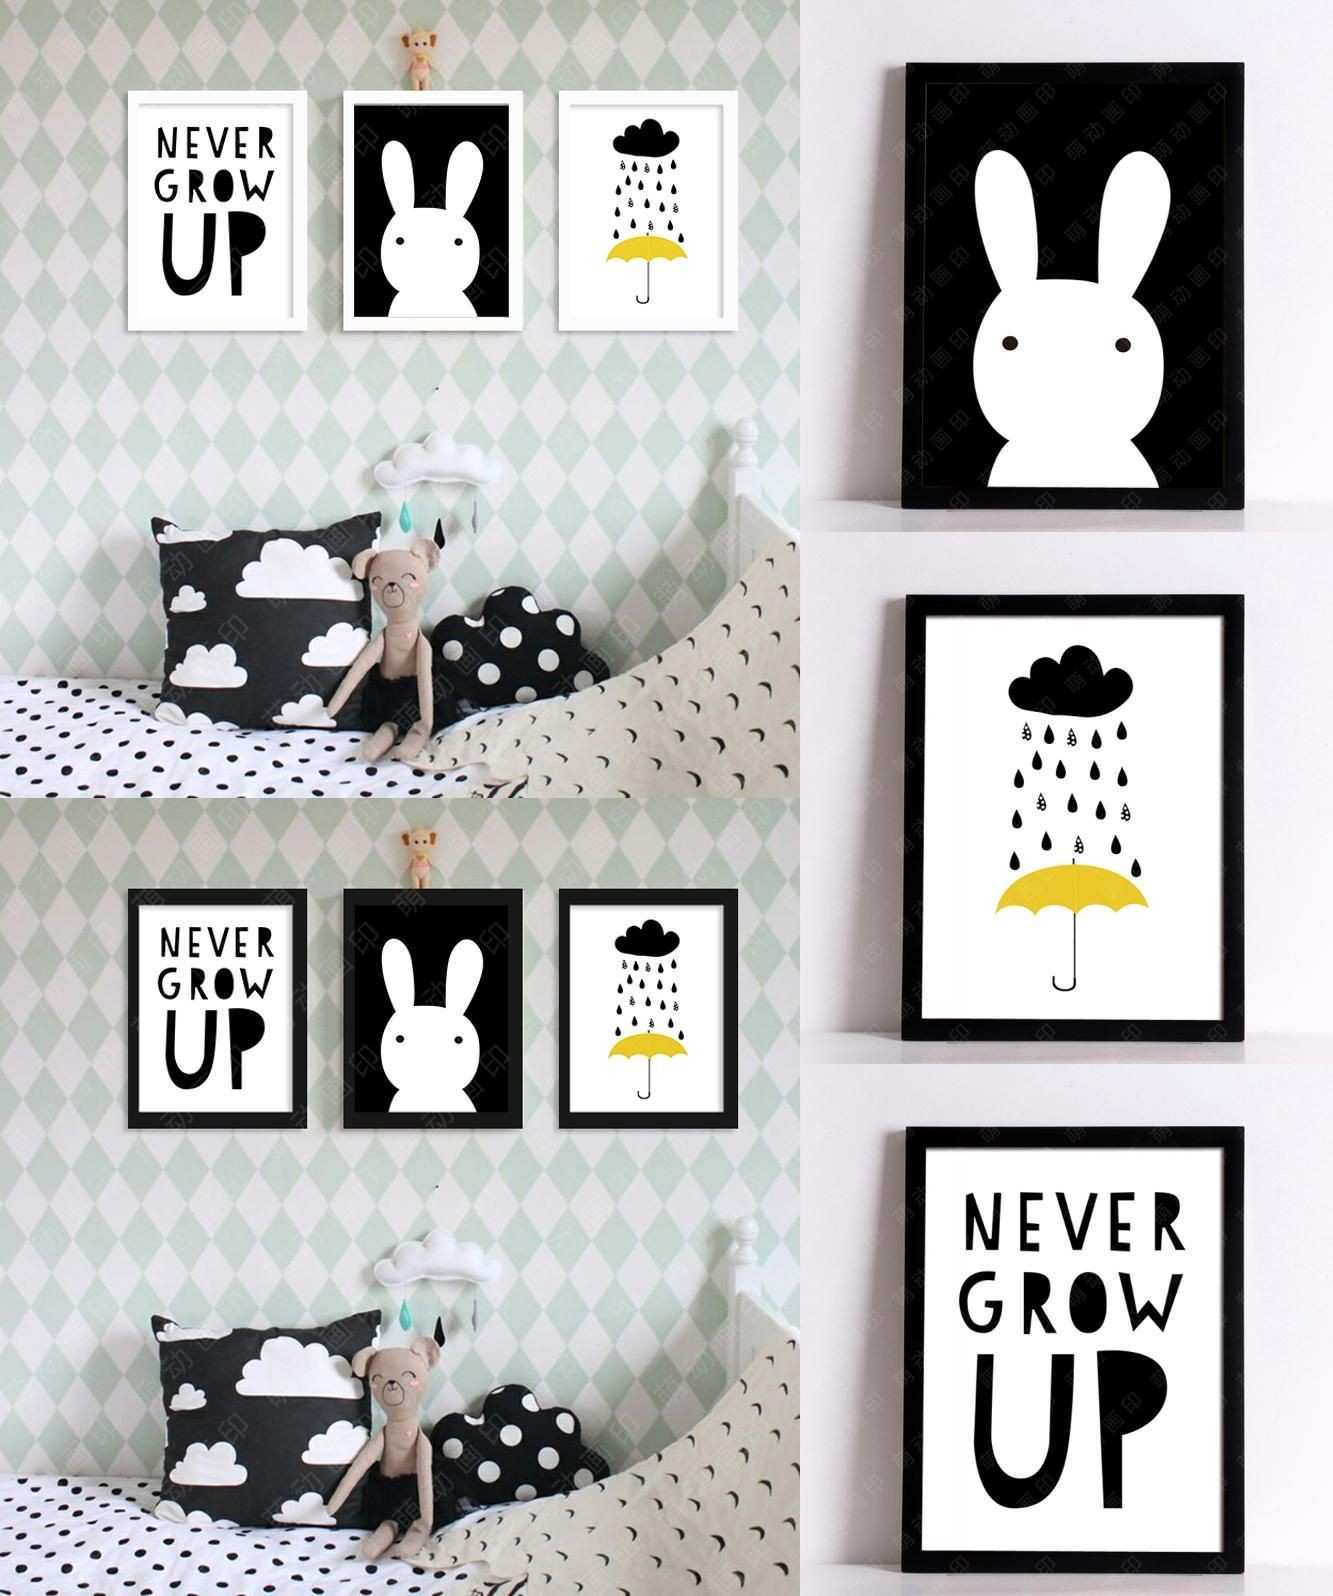 Visit to Buy] Cuadros Decoracion Nordic Decoration Never Grow Up